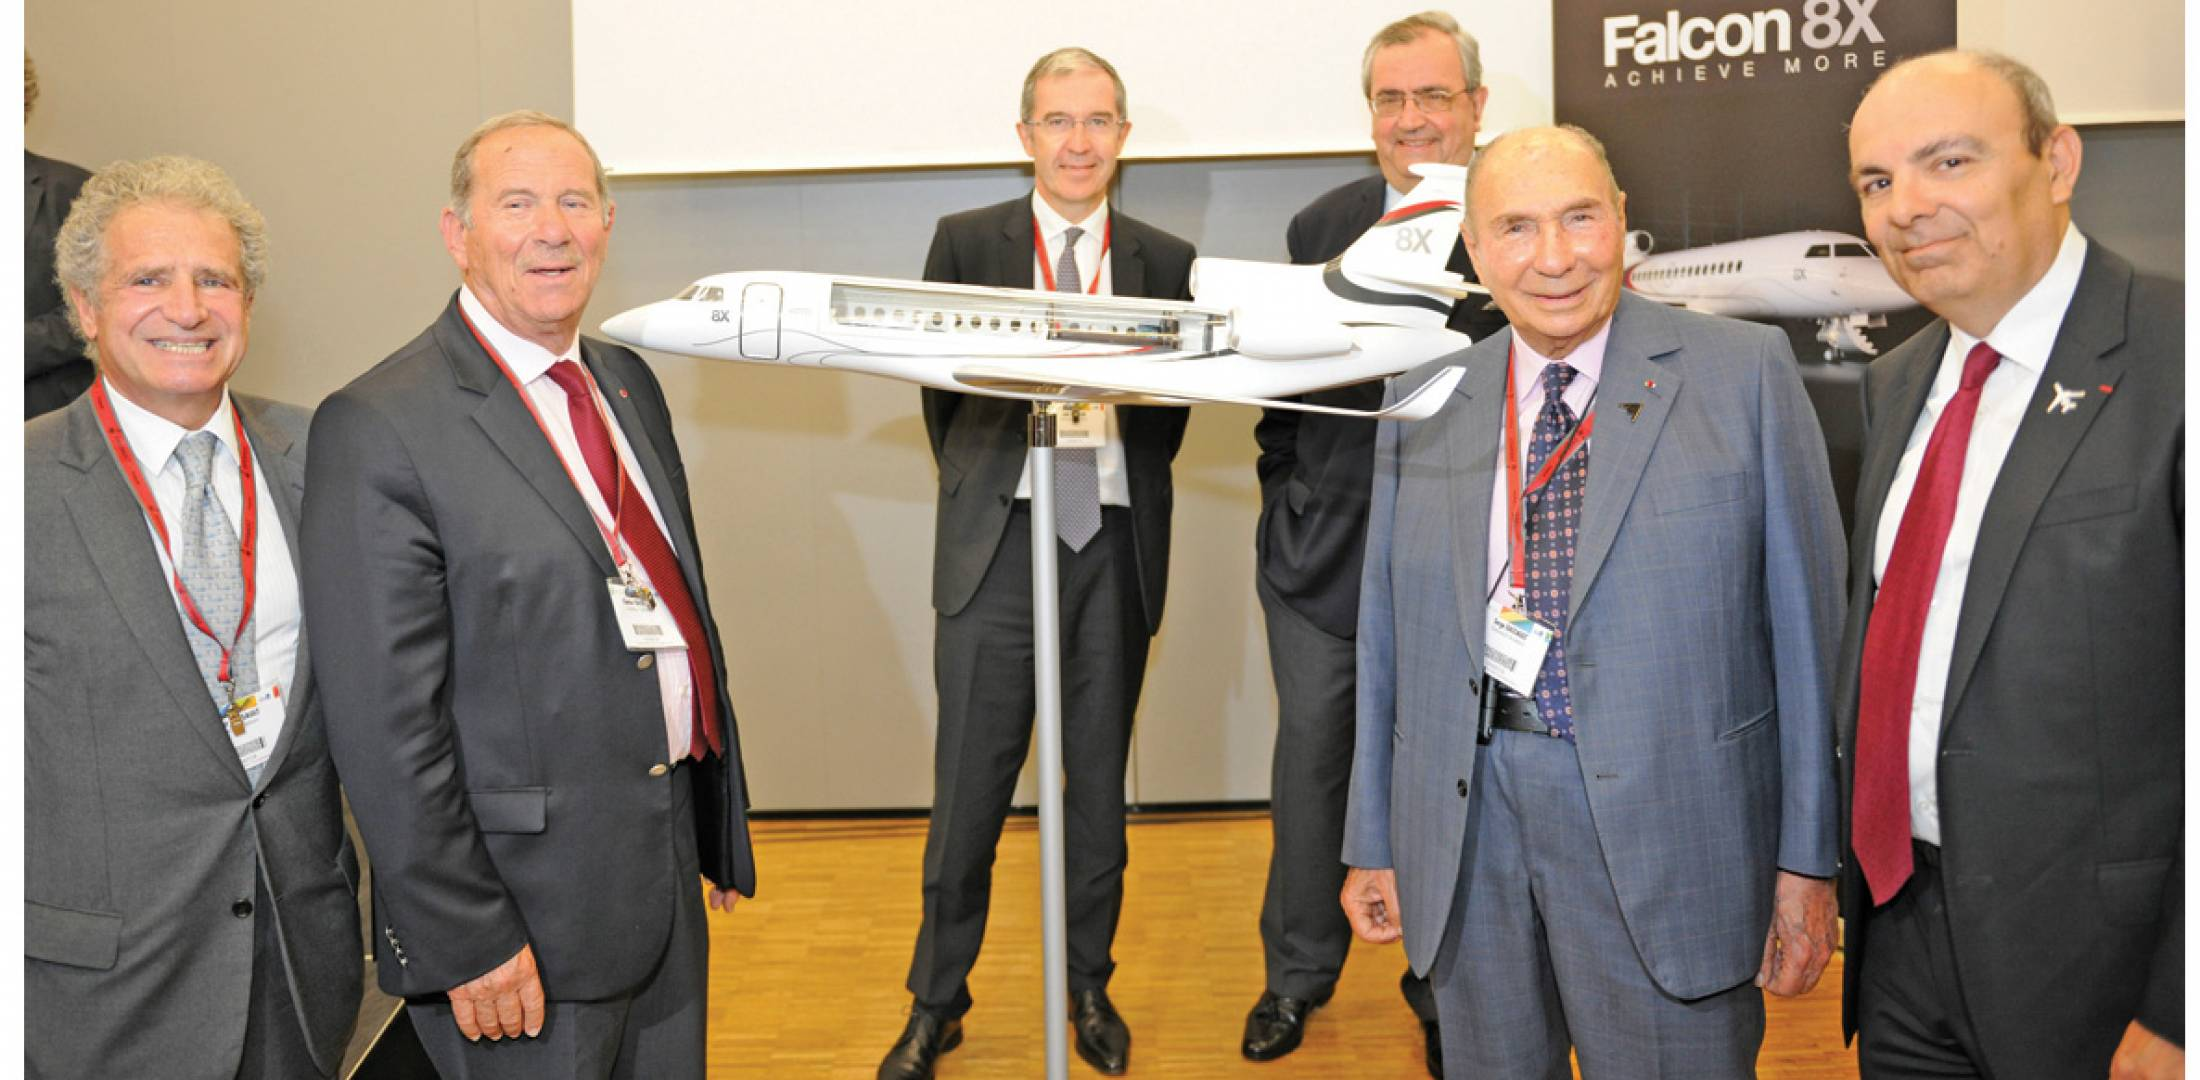 Dassault executives celebrate the launch of their newest model, the Falcon 8X. Left to right: Laurent Dassault, vice chairman and CEO of Groupe Industriel Marcel Dassault; Charles Edelstenne, retired chairman and CEO of Dassault Aviation; Loïk Segalen, COO Dassault Aviation; John Rosanvallon, president and CEO of Dassault Falcon Jet; launch customer Serge Dassault, chairman and CEO Groupe Dassault; and Eric Trappier, Chairman and CEO, Dassault Aviation. (Photo: Mark Wagner)